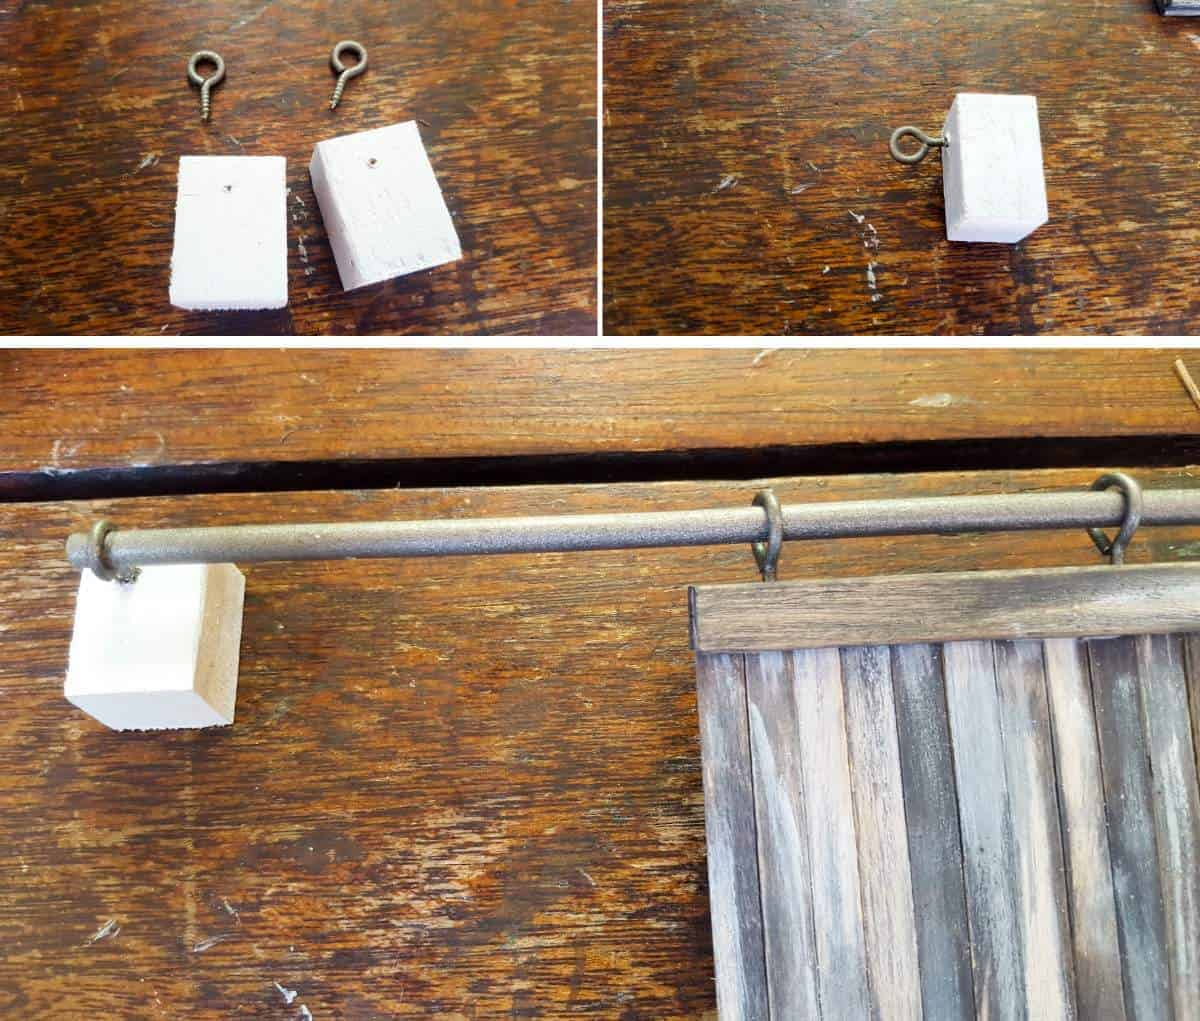 How to build miniature barn doors to hide those ugly wall plugs. Full tutorial on the blog